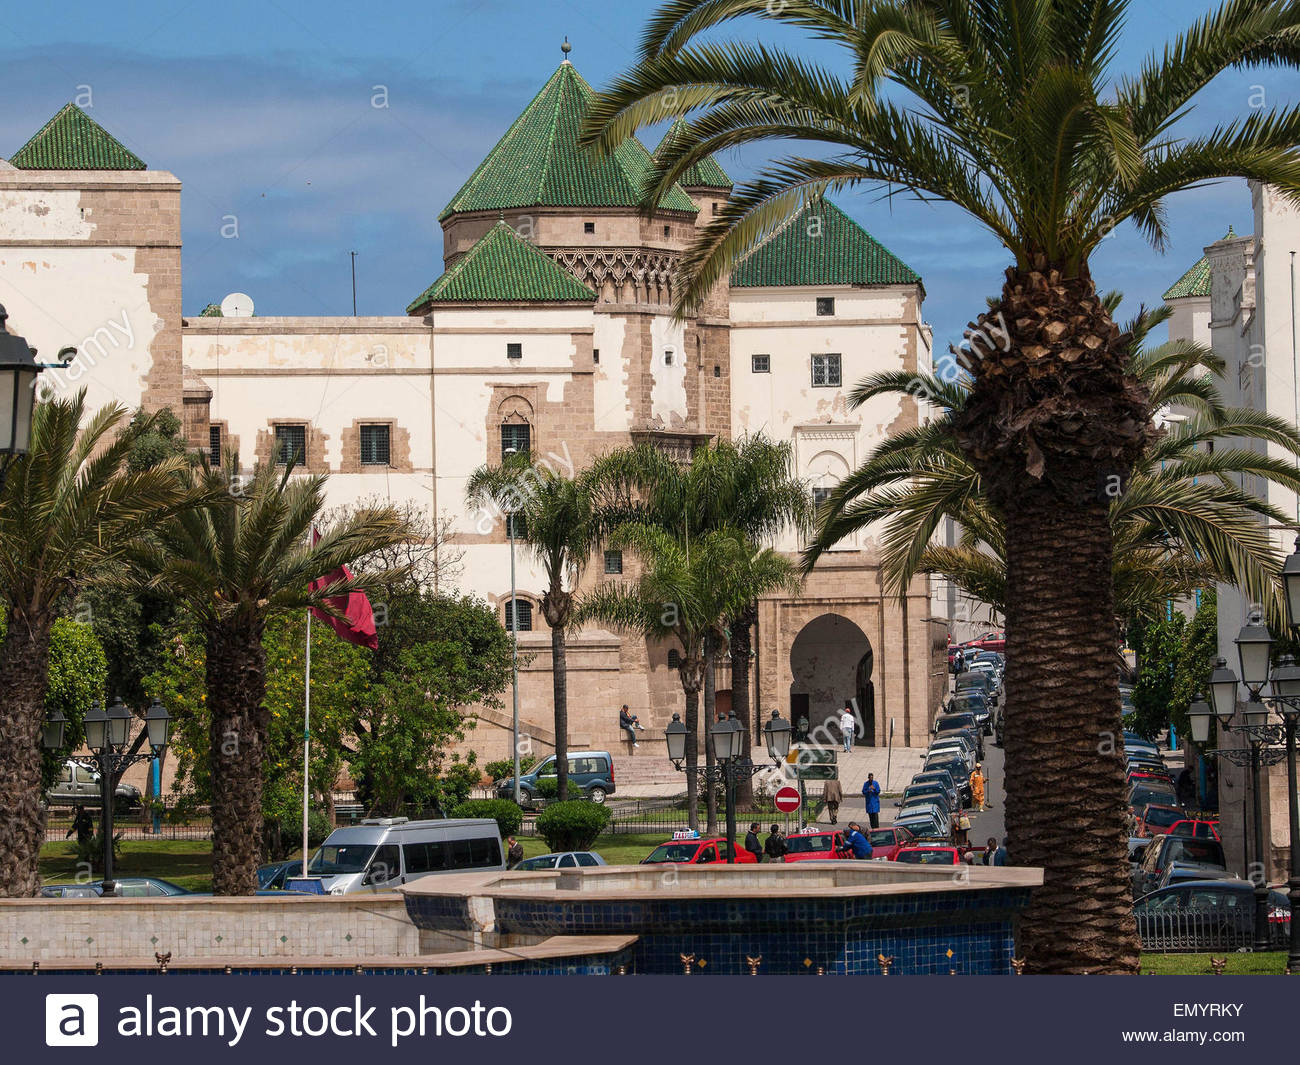 Le Palais Royal, Casablanca, Maroc Photo Stock